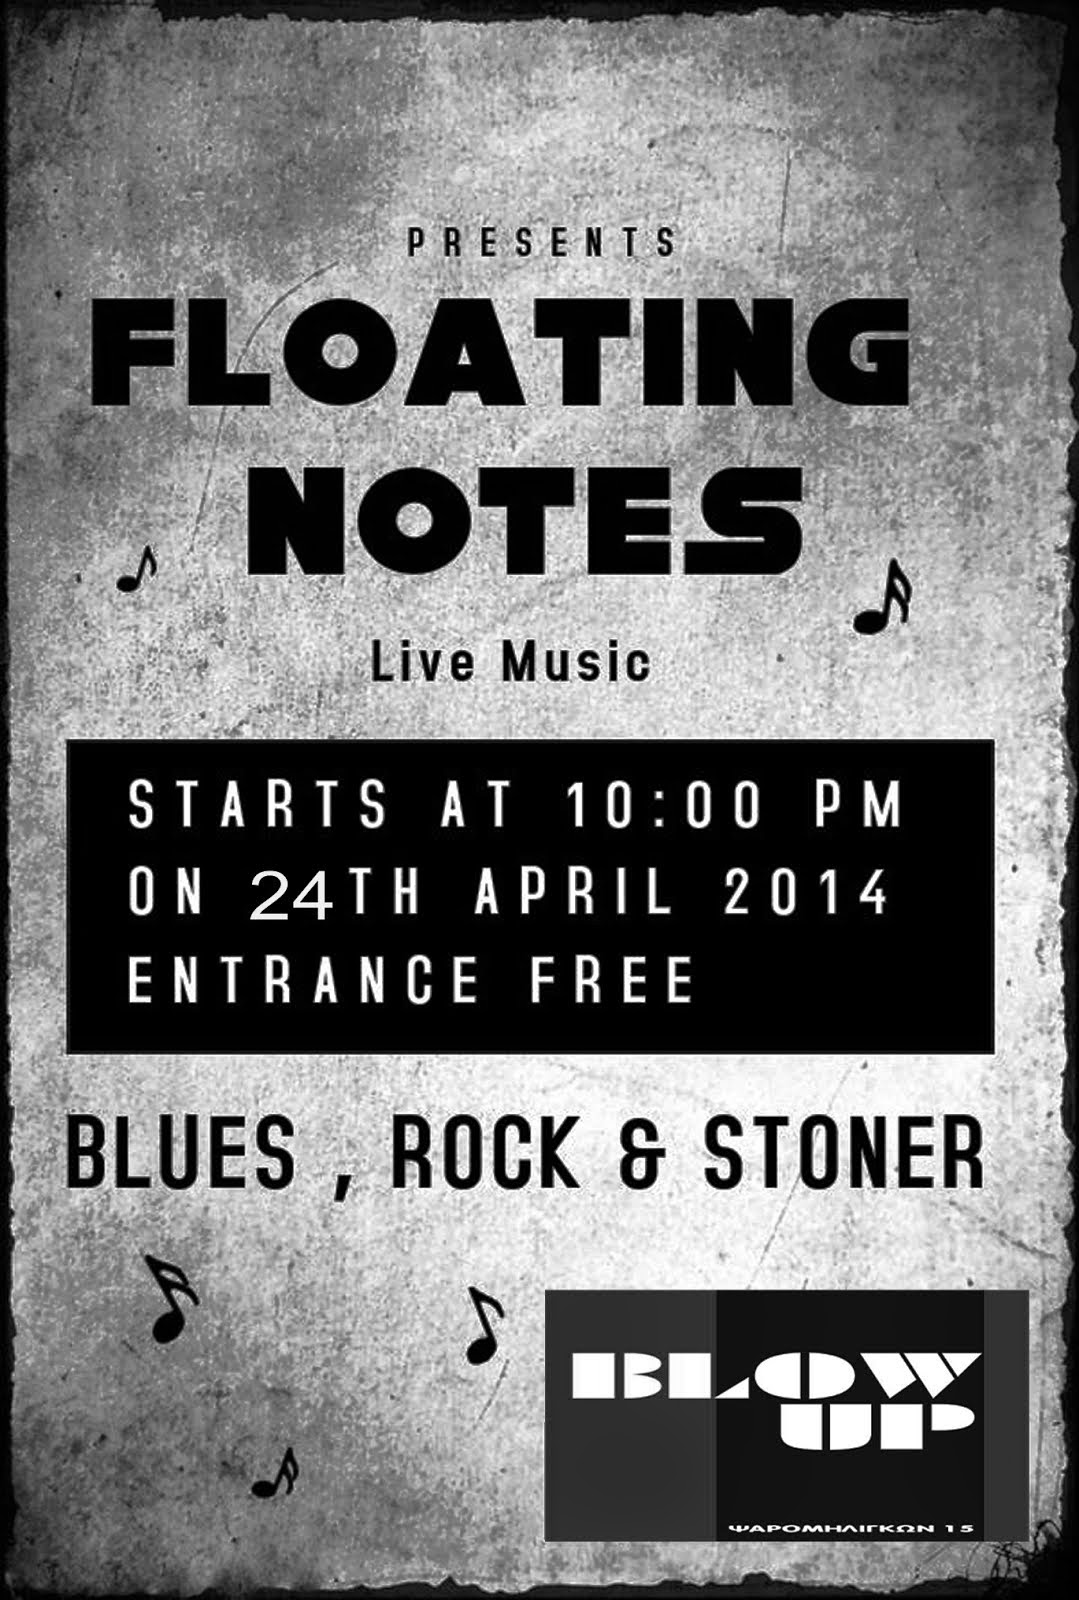 the floating notes